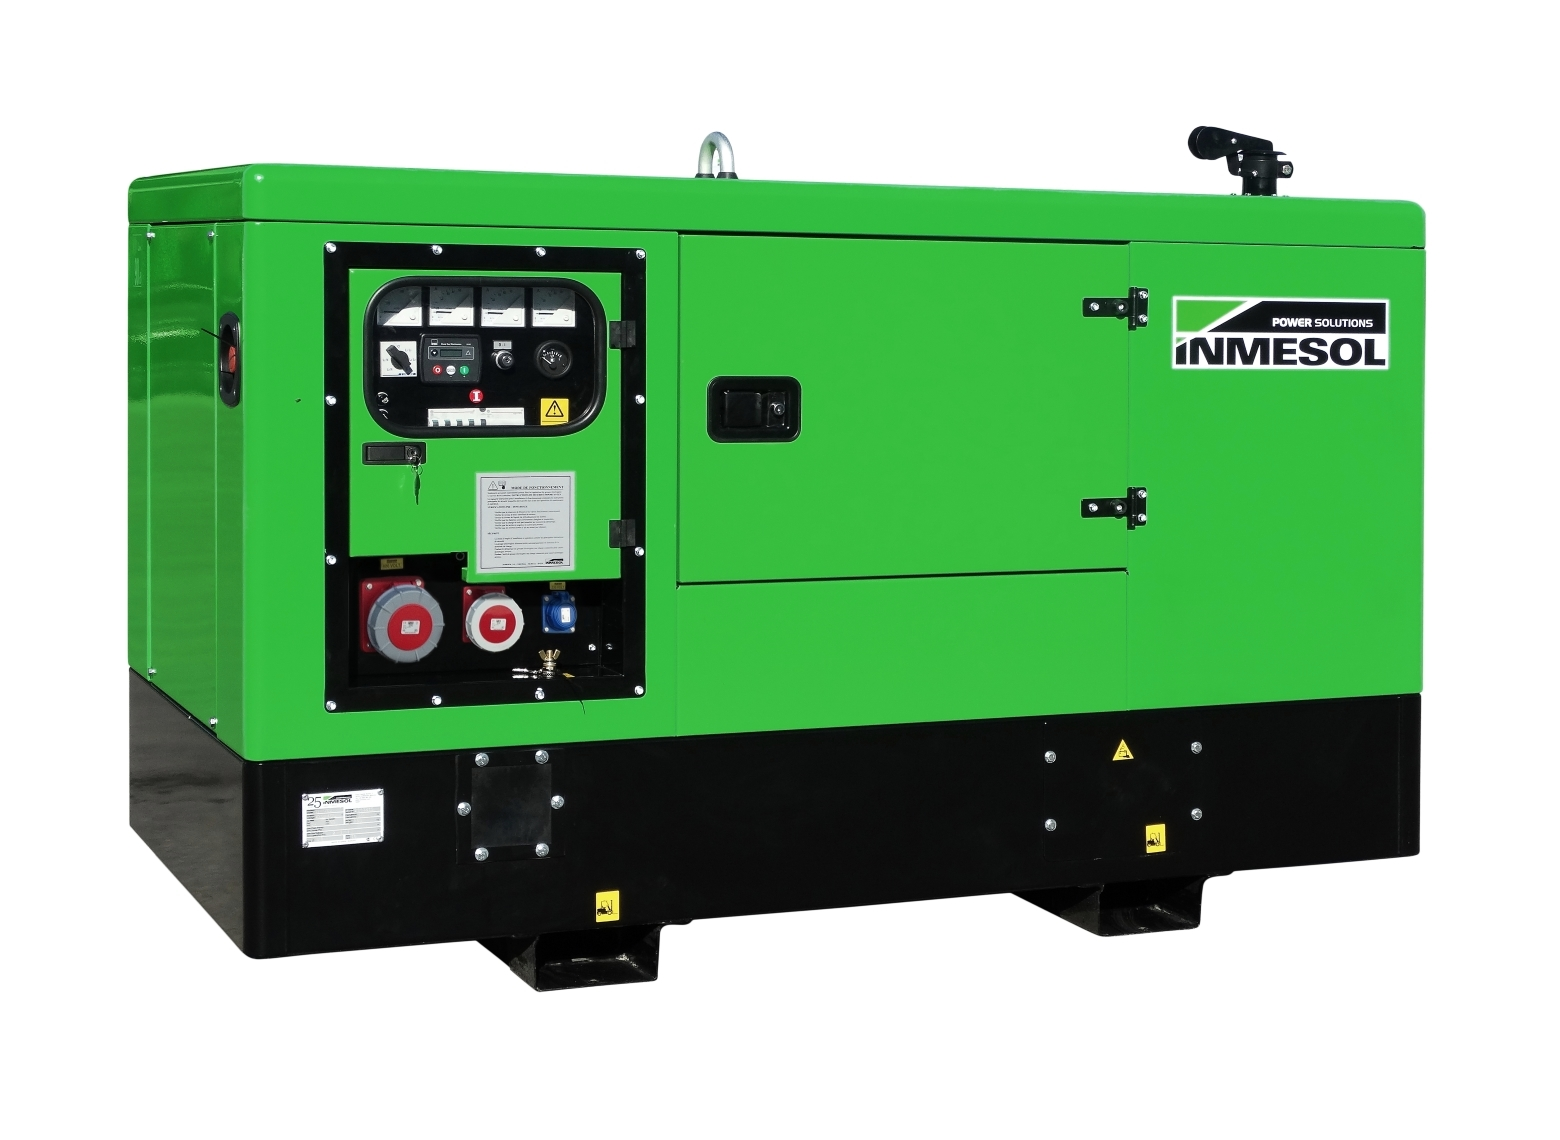 Generator with manual control panel.IK-26 - KOHLER - KDI2504TM30 - 1.500 R.P.M. | 50 Hz